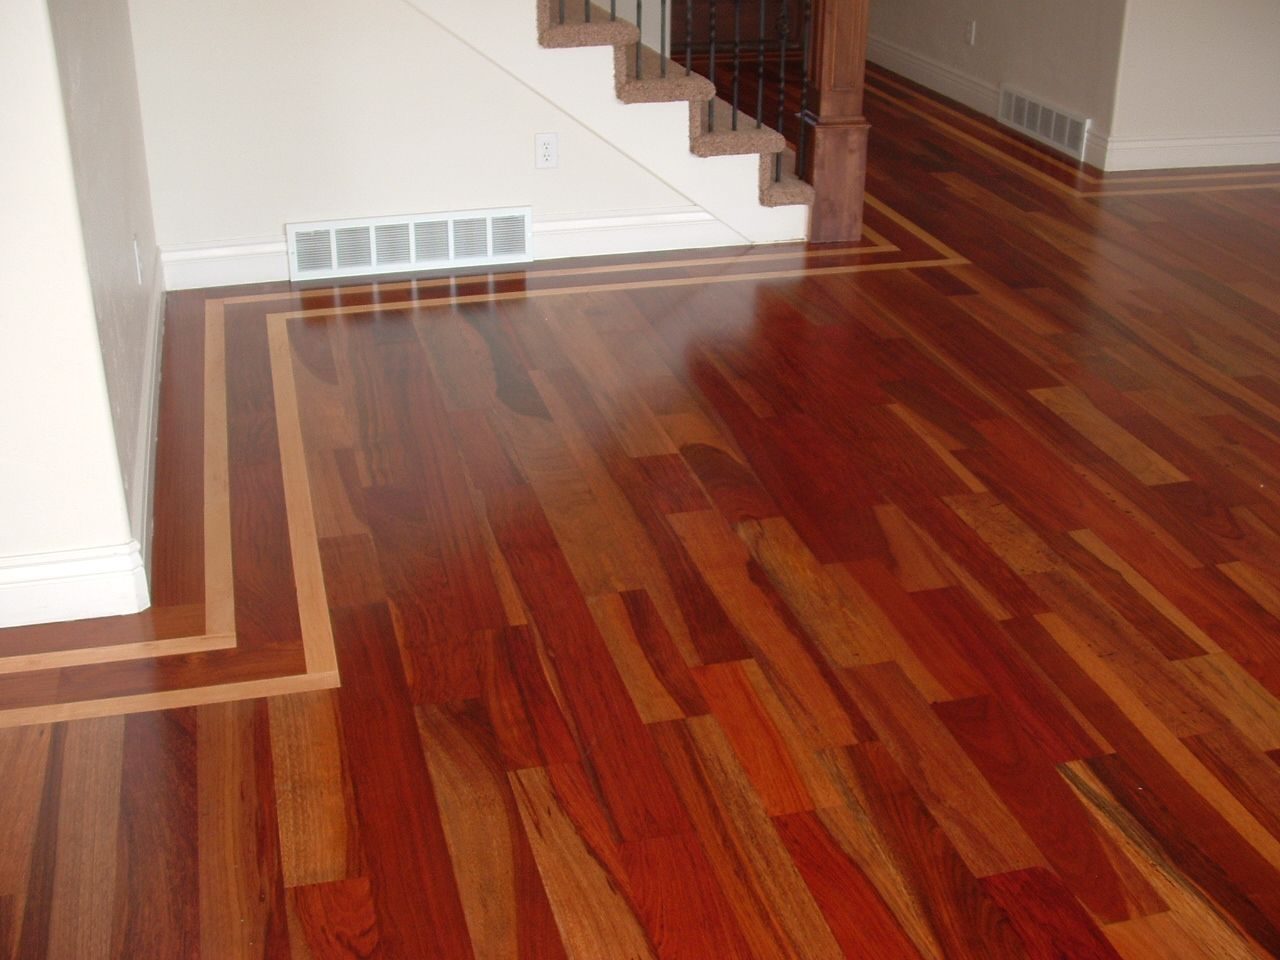 Brazilian cherry hardwood flooring flooring ideas home for Cherry hardwood flooring